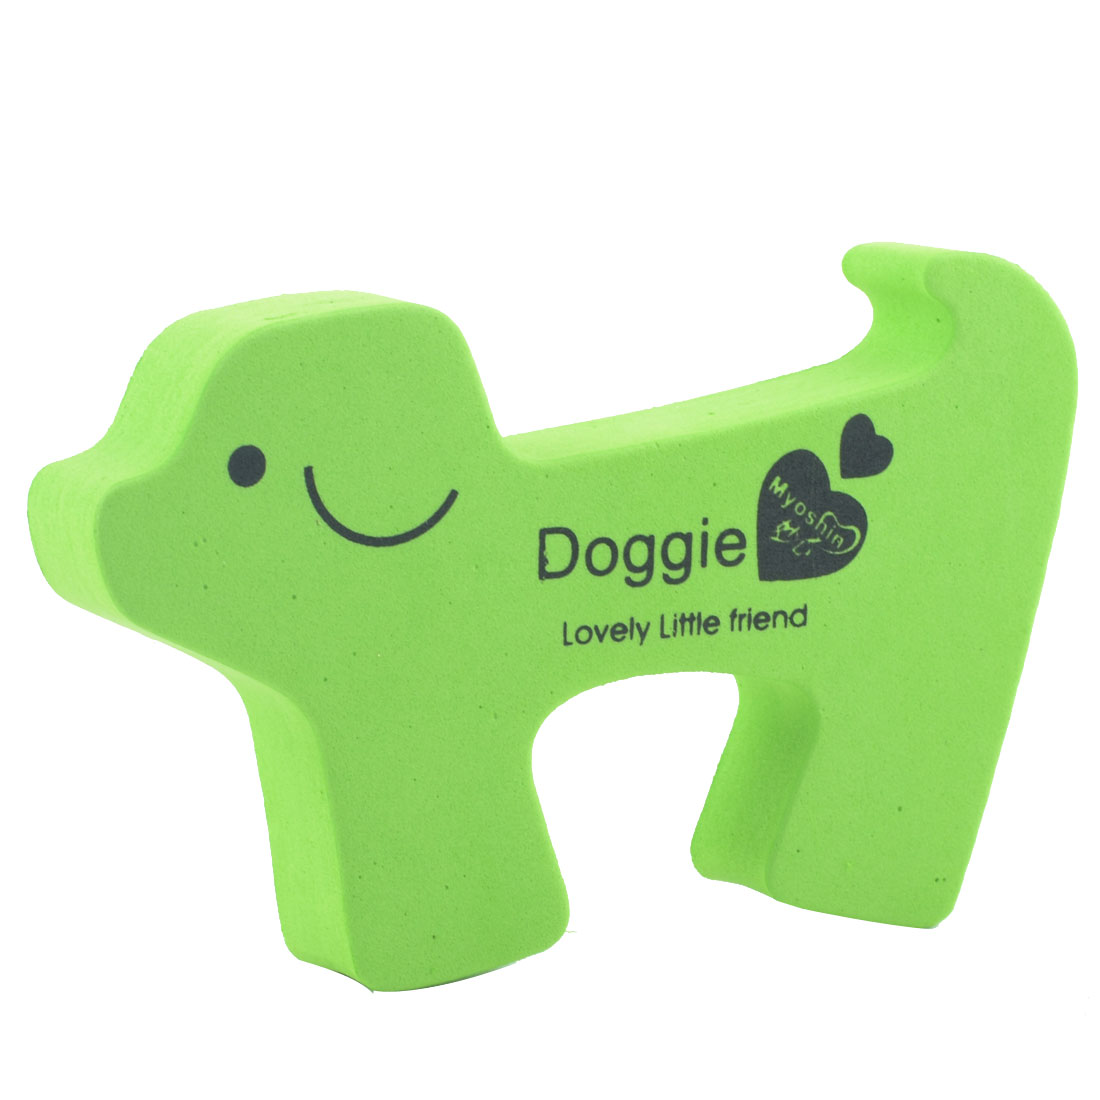 EVA Lovely Green Doggie Shape Finger Safety Guard Doorstop Door Stopper Lock